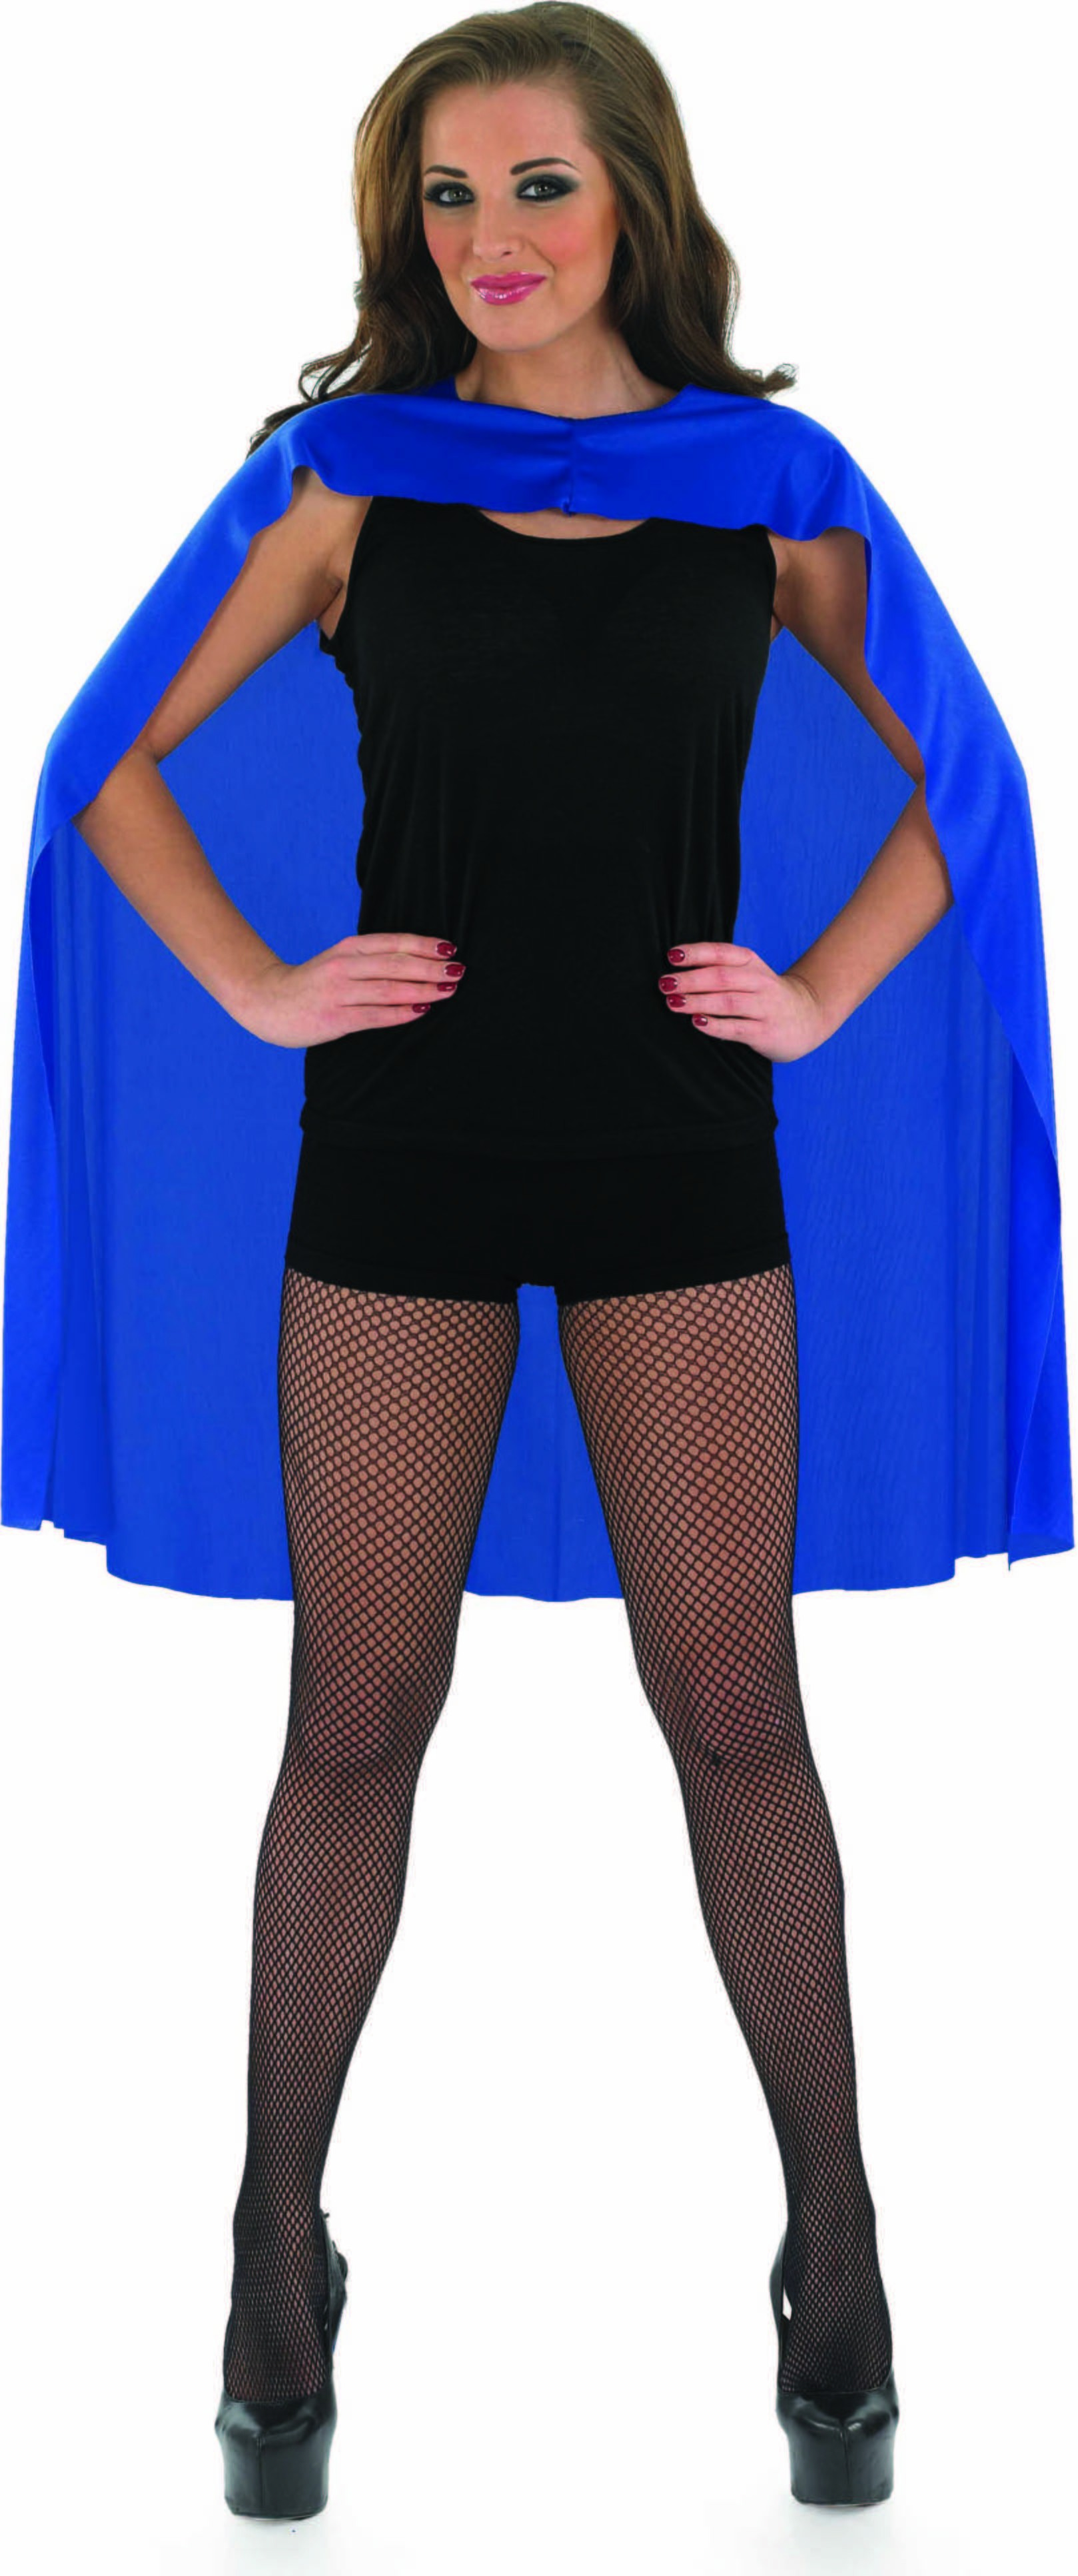 Adult Unisex Blue Superhero Cape - (Blue)